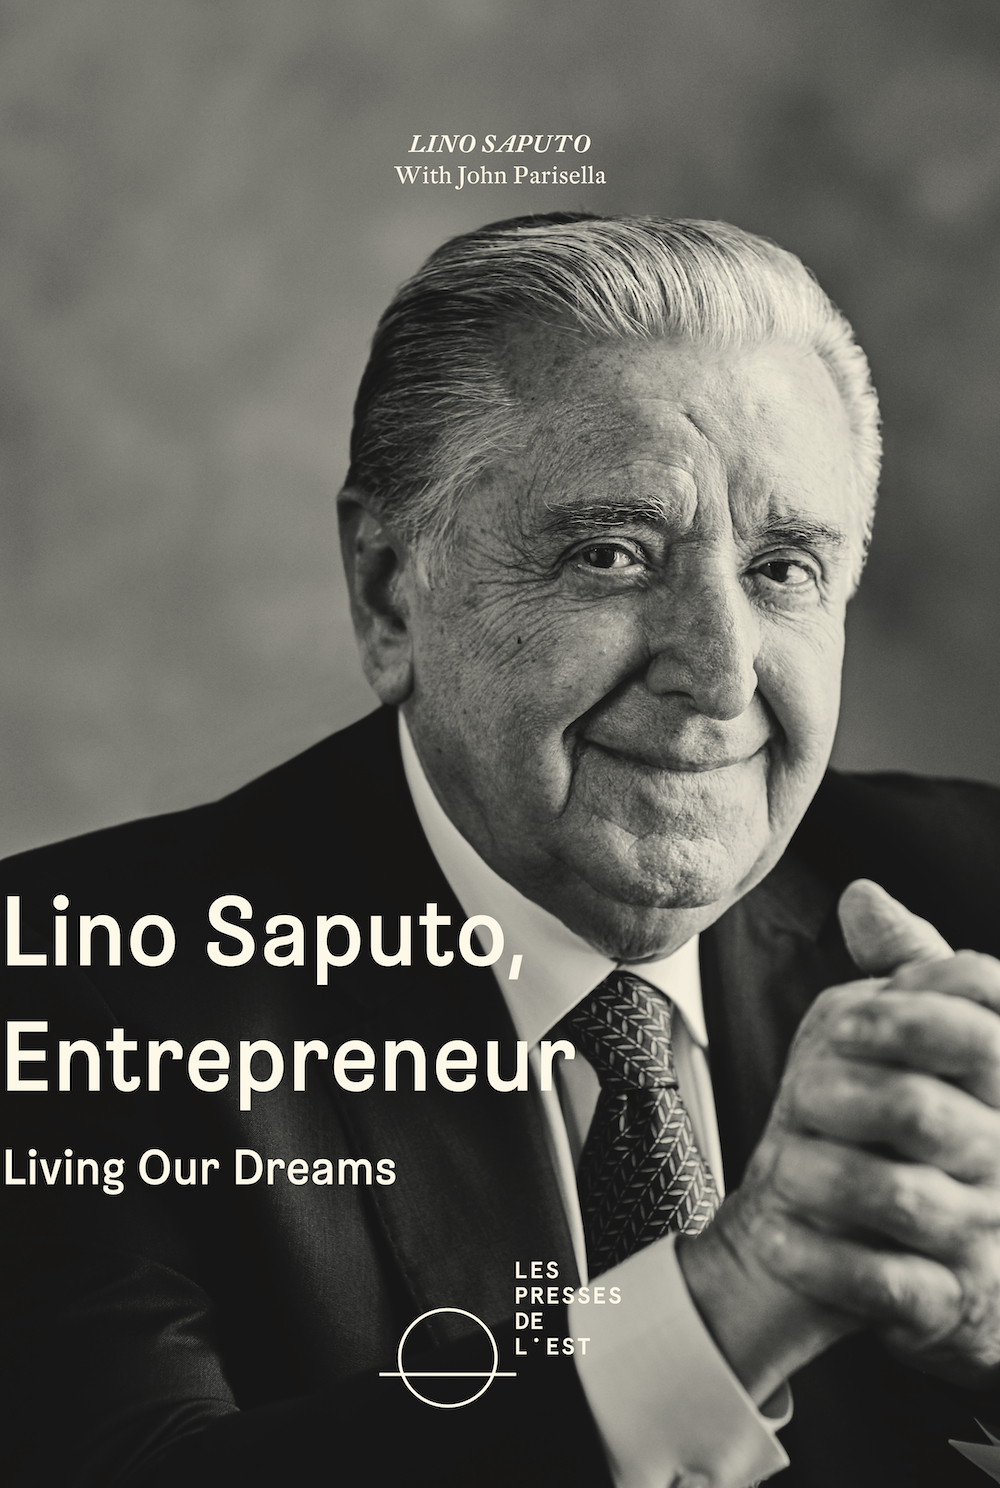 Lino Saputo, entrepreneur : Living Our Dreams - Lino Saputo